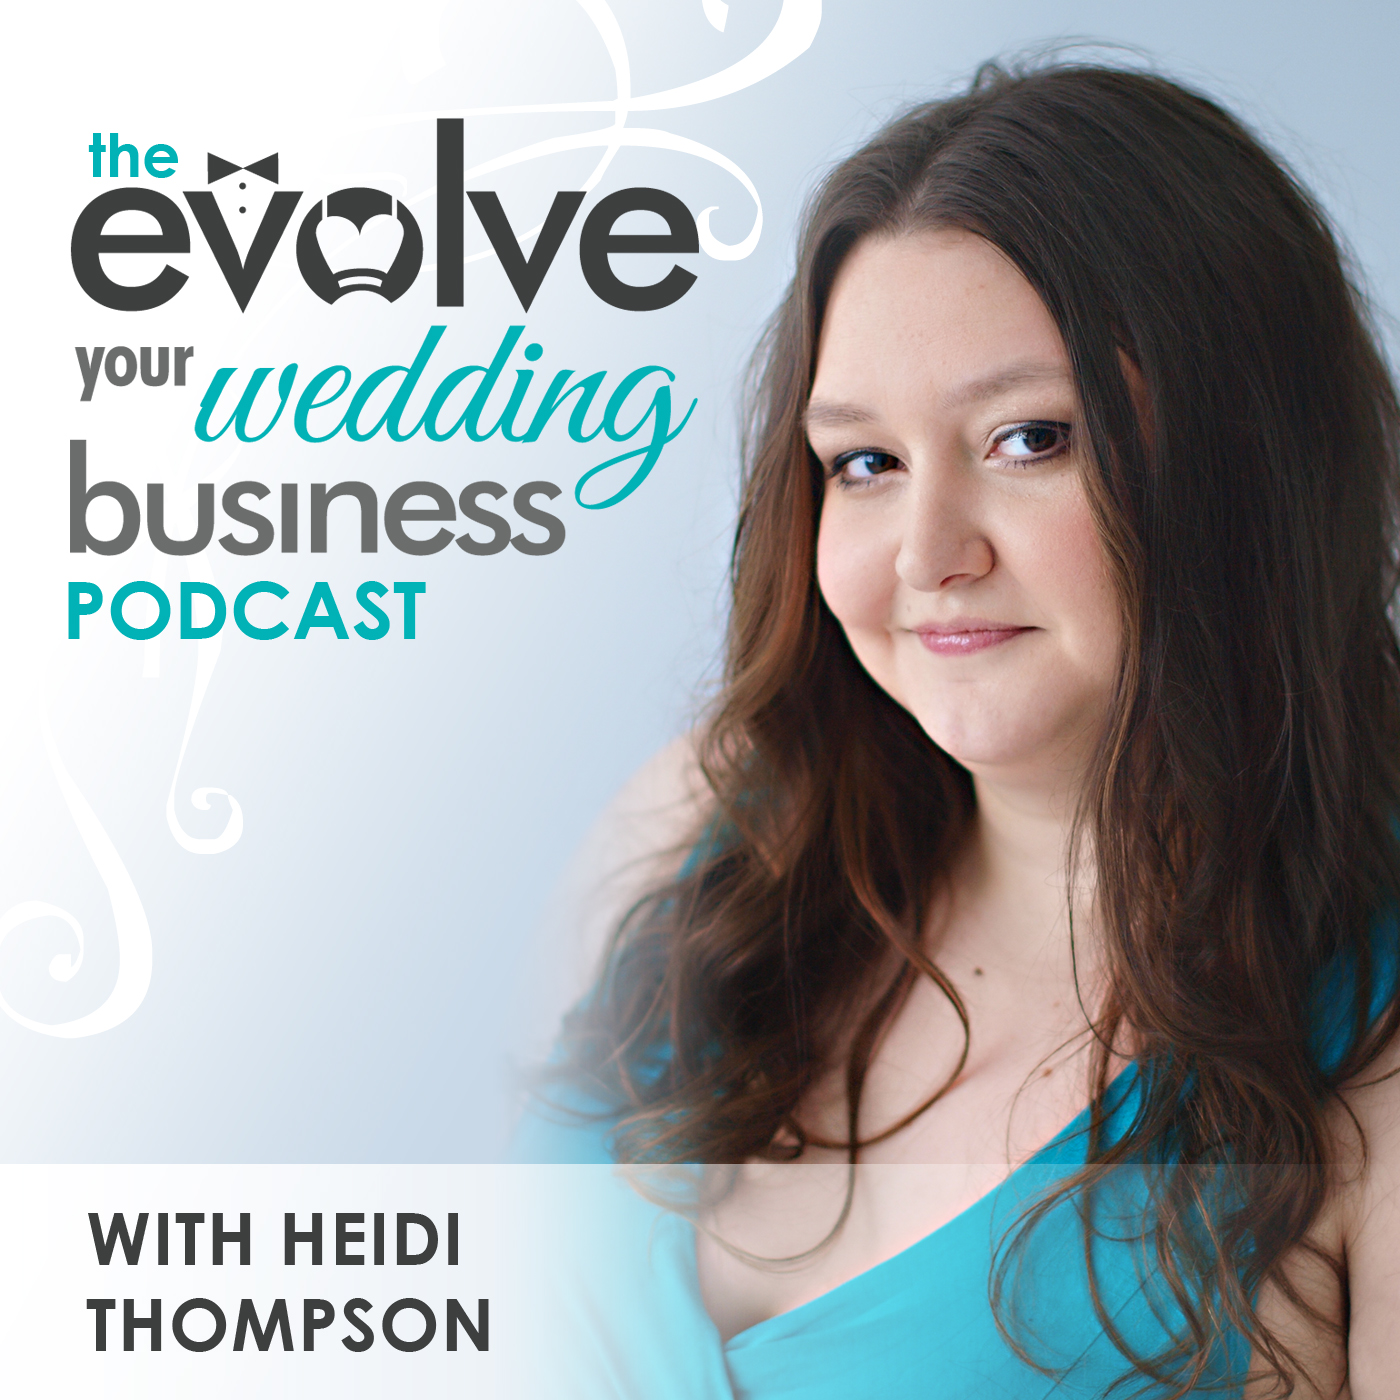 Episode 200: How To Prioritize Your Day During Uncertain Times with Kari Roberts